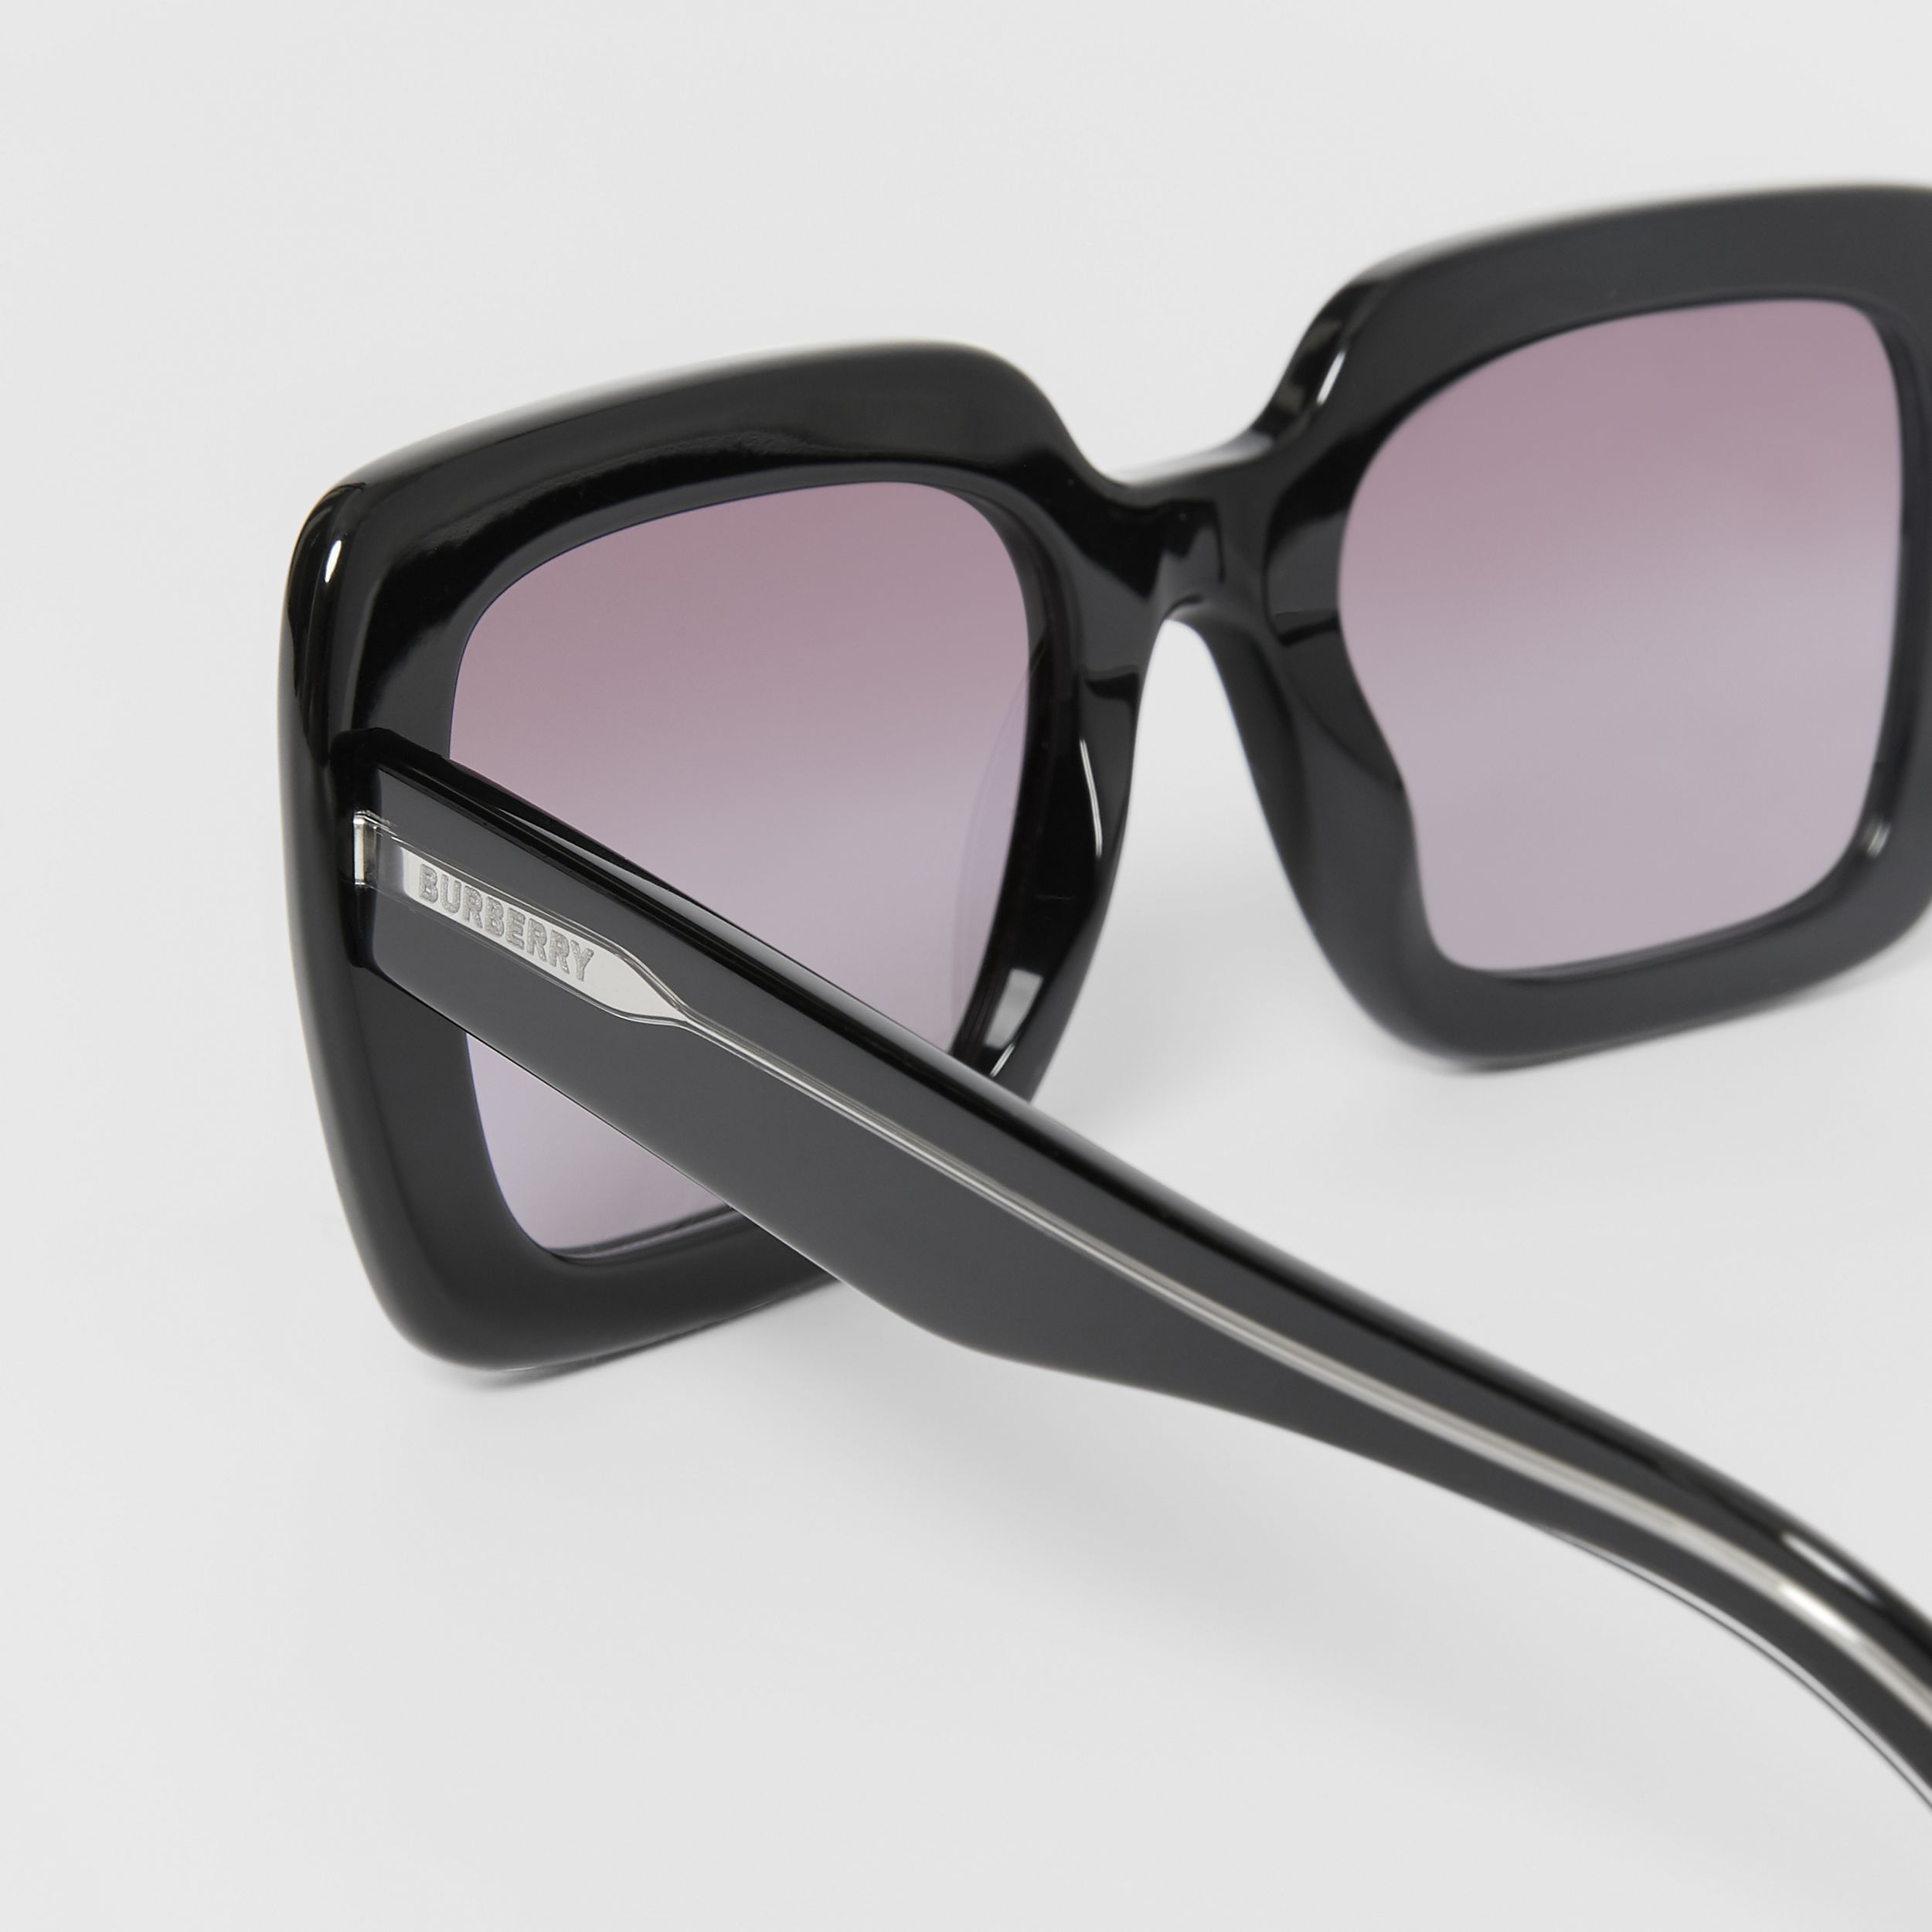 Oversized Square Frame Sunglasses in Black - Women | Burberry Hong Kong S.A.R. - 2